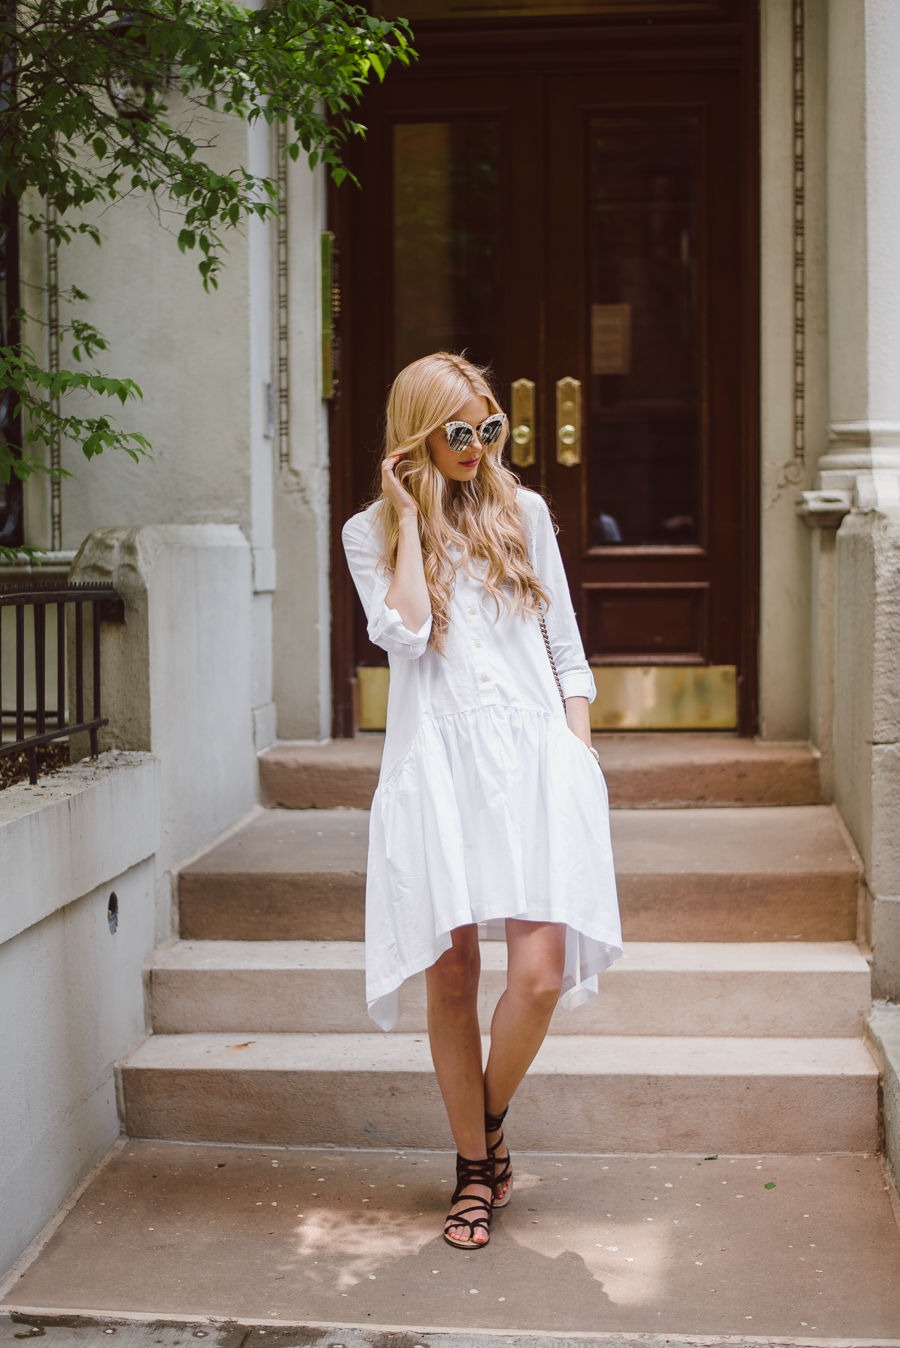 Accessorise A White Dress: Amber Fillerup Clark is wearing a DKNY dress